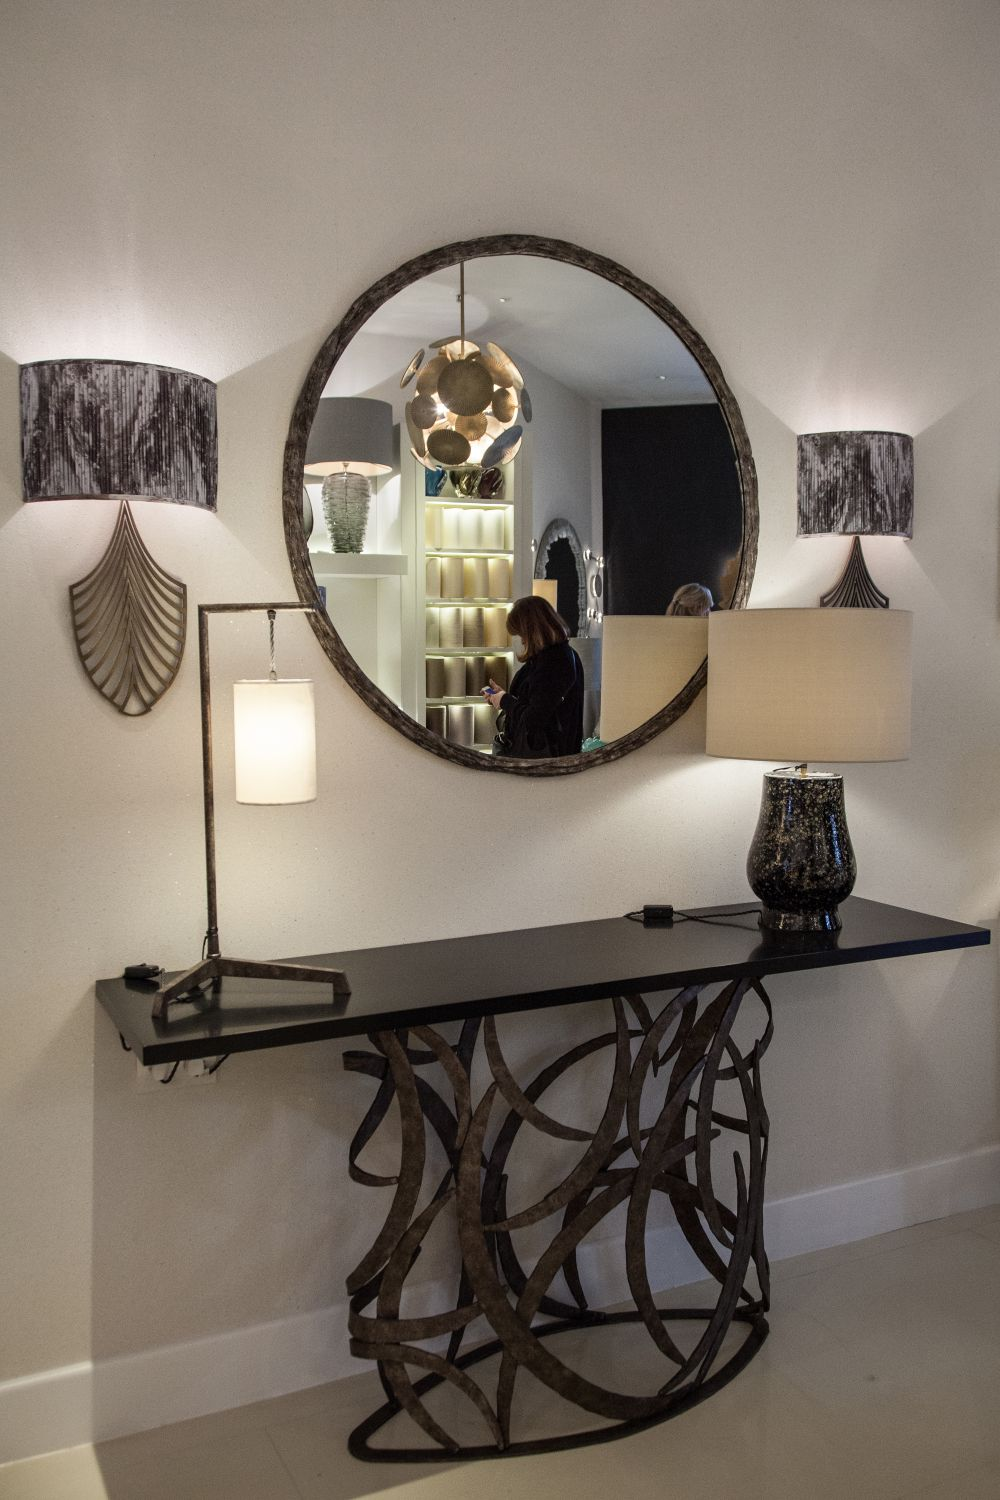 The Entryway Mirror The Star Of A Welcoming Home